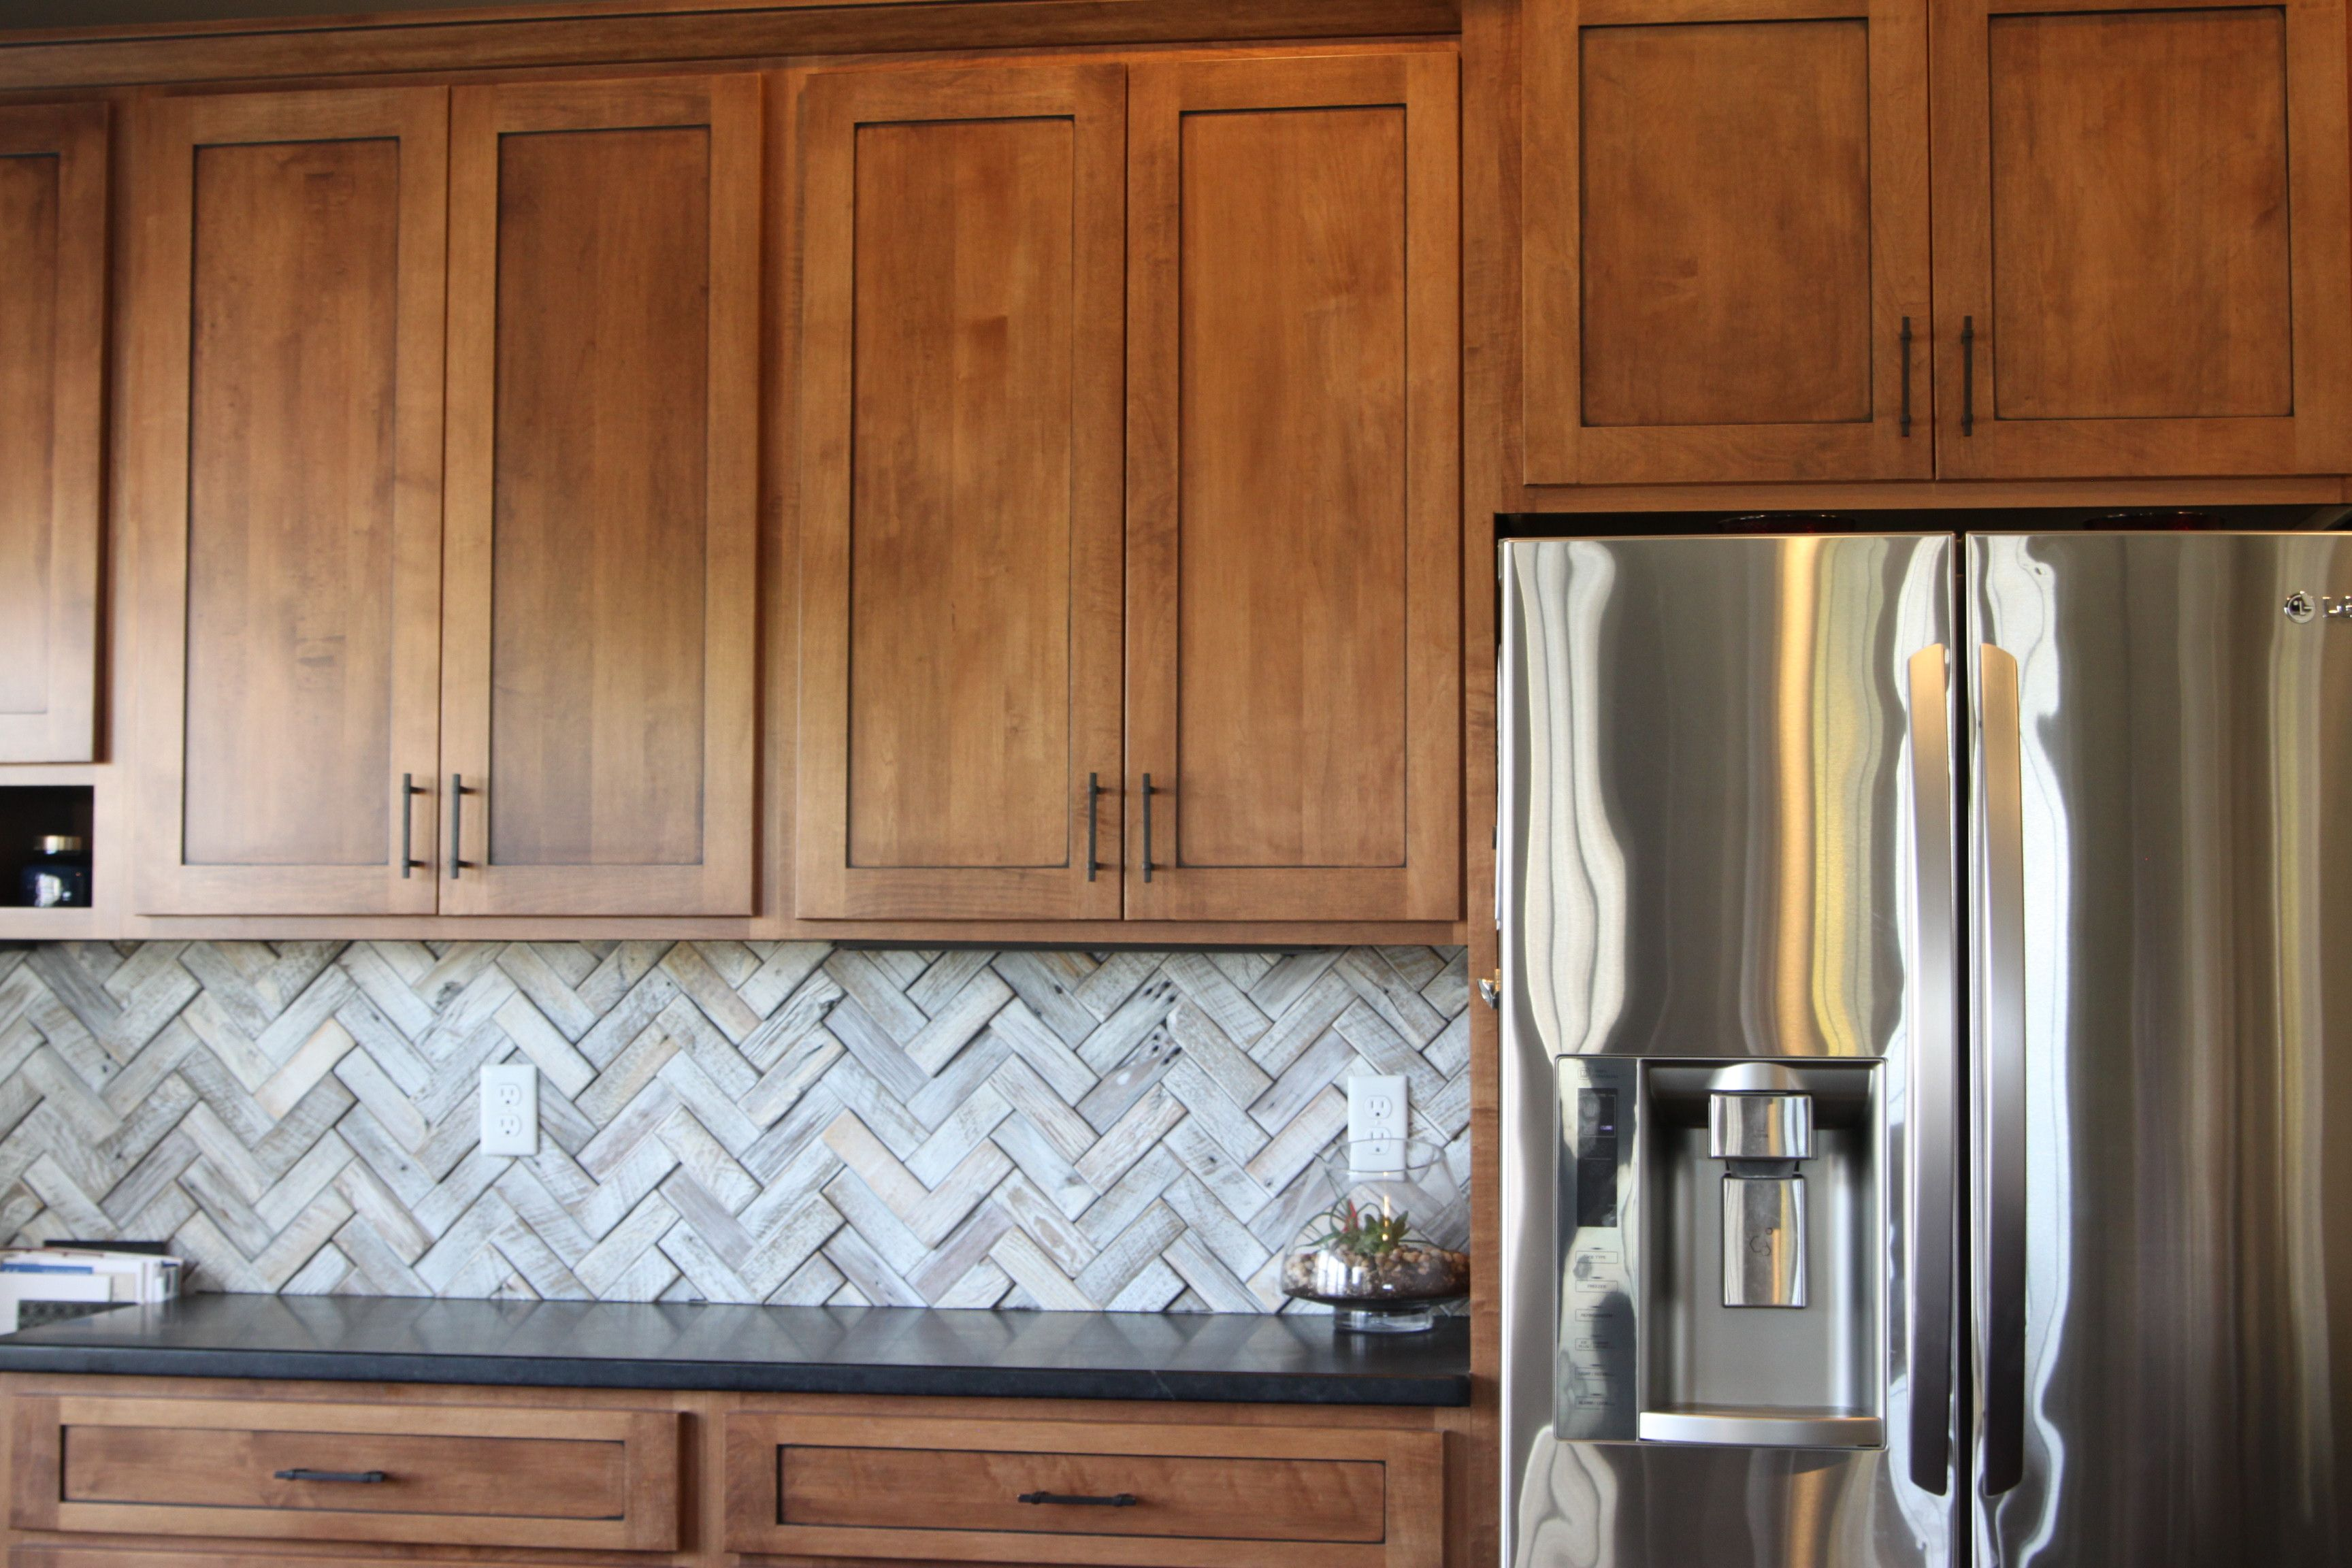 Herringbone Backsplash Suburban Bees Wood Tile Kitchen Backsplash Wood Tile Kitchen Kitchen Backsplash Designs